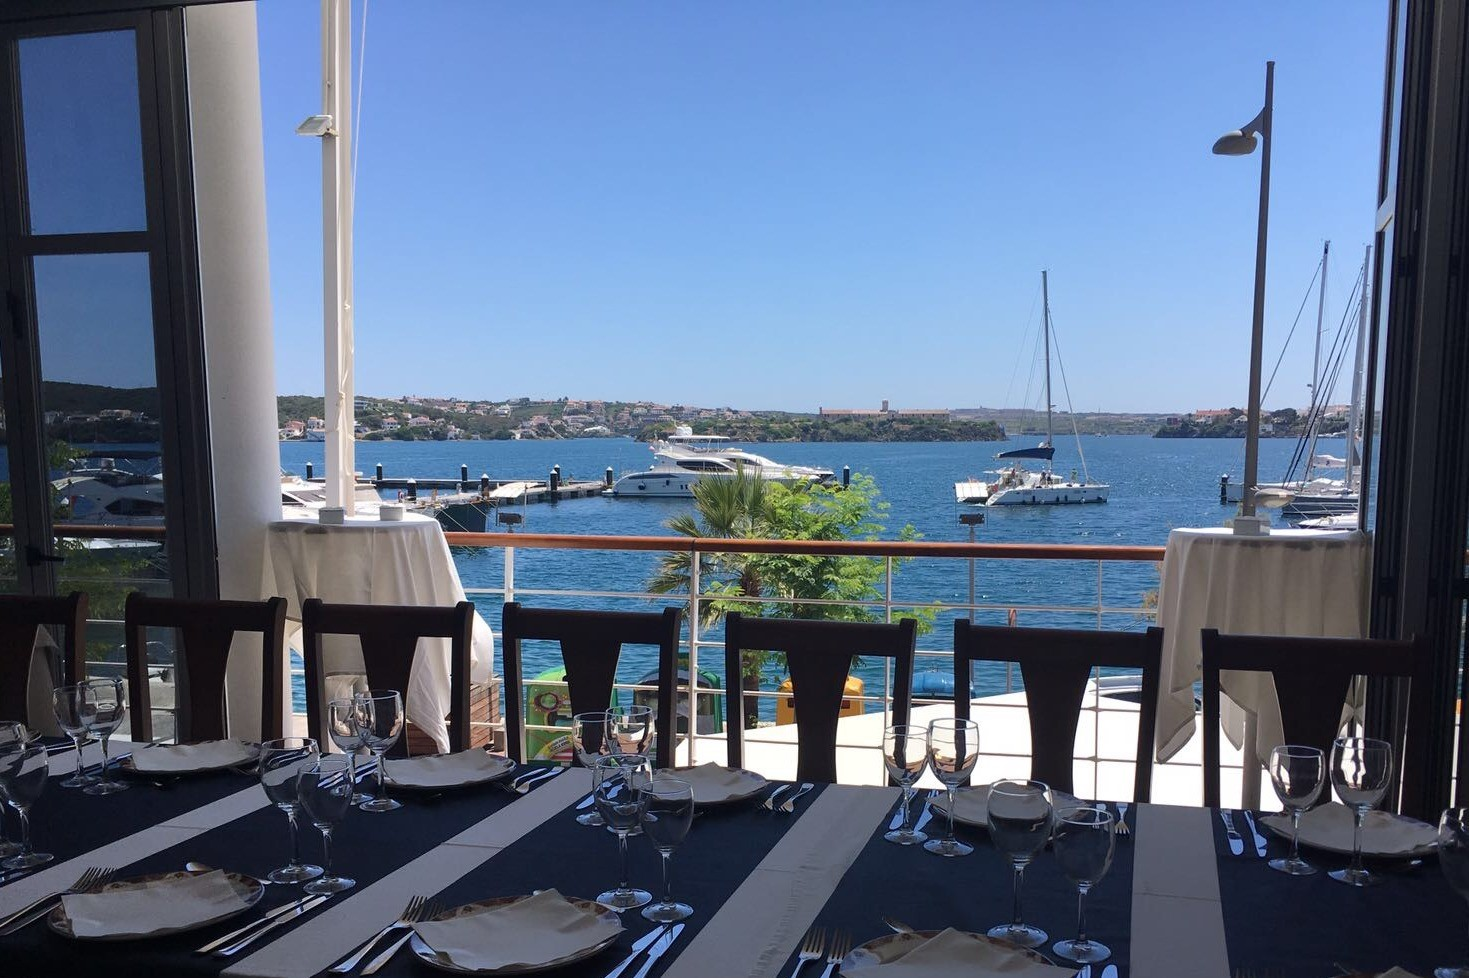 View of Port from restaurant in Mahon Port